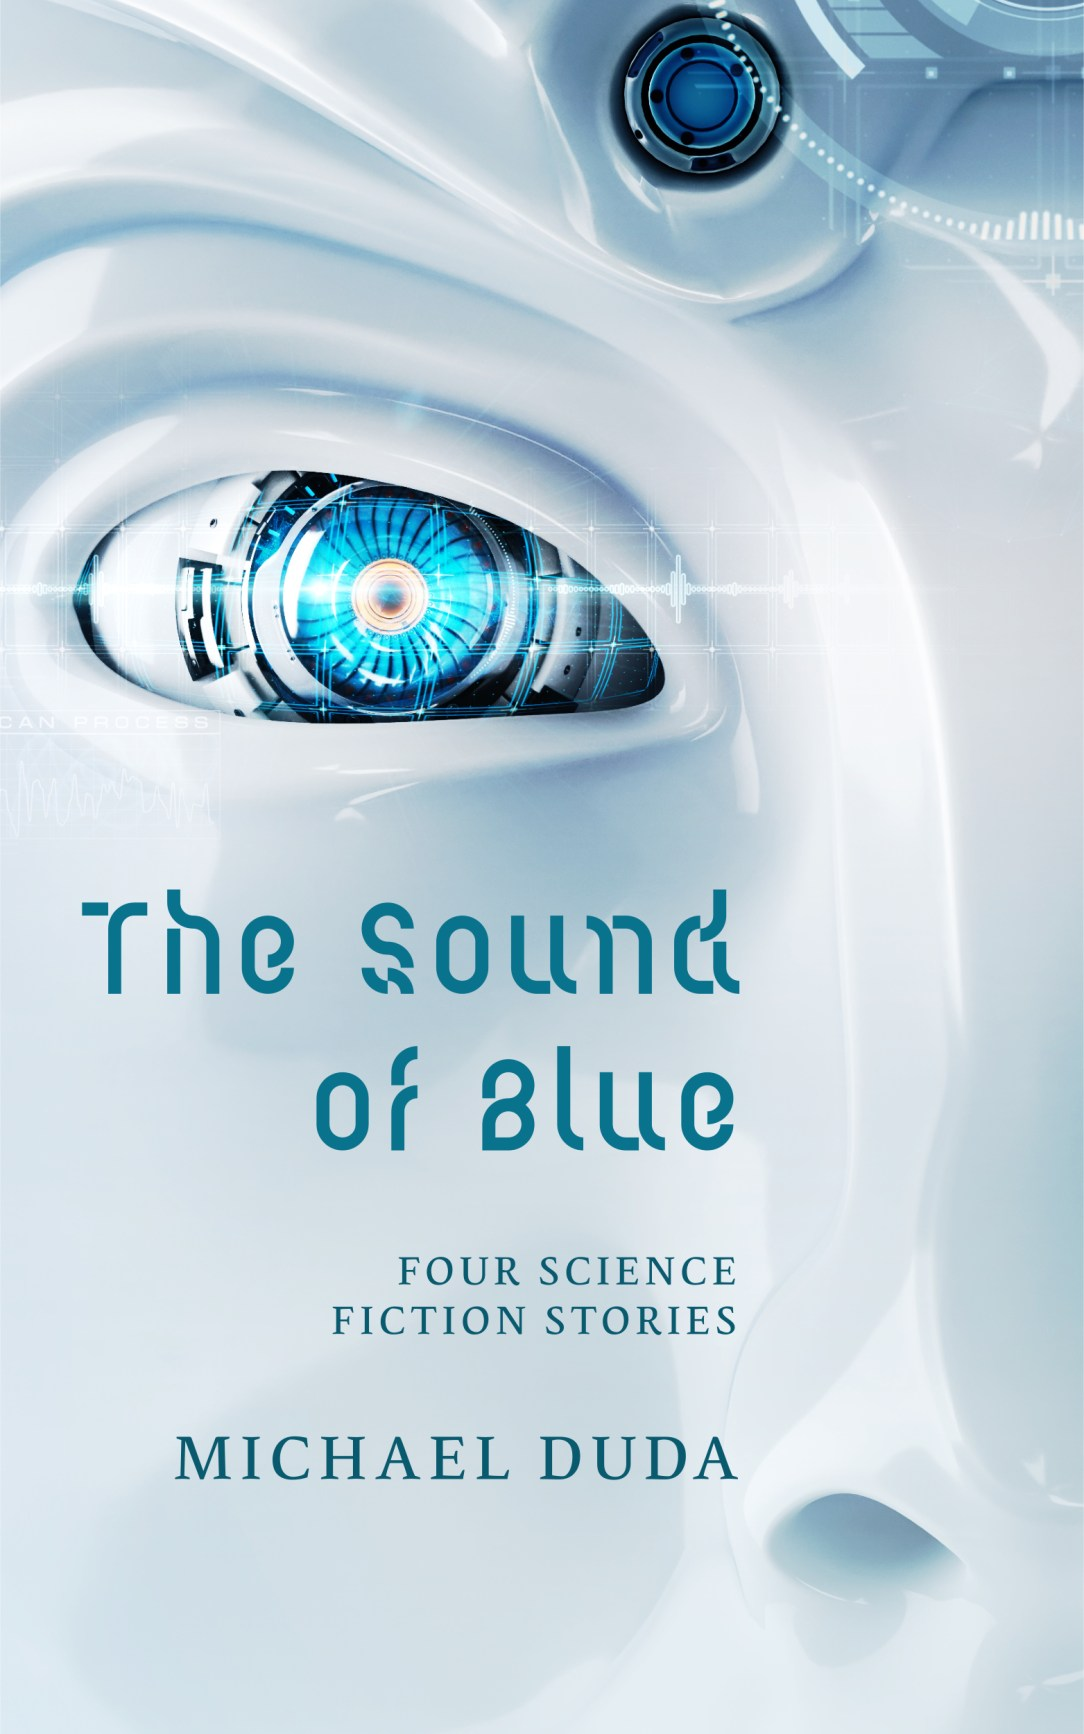 Where aliens exist. The Sound of Blue book cover by Michael Duda